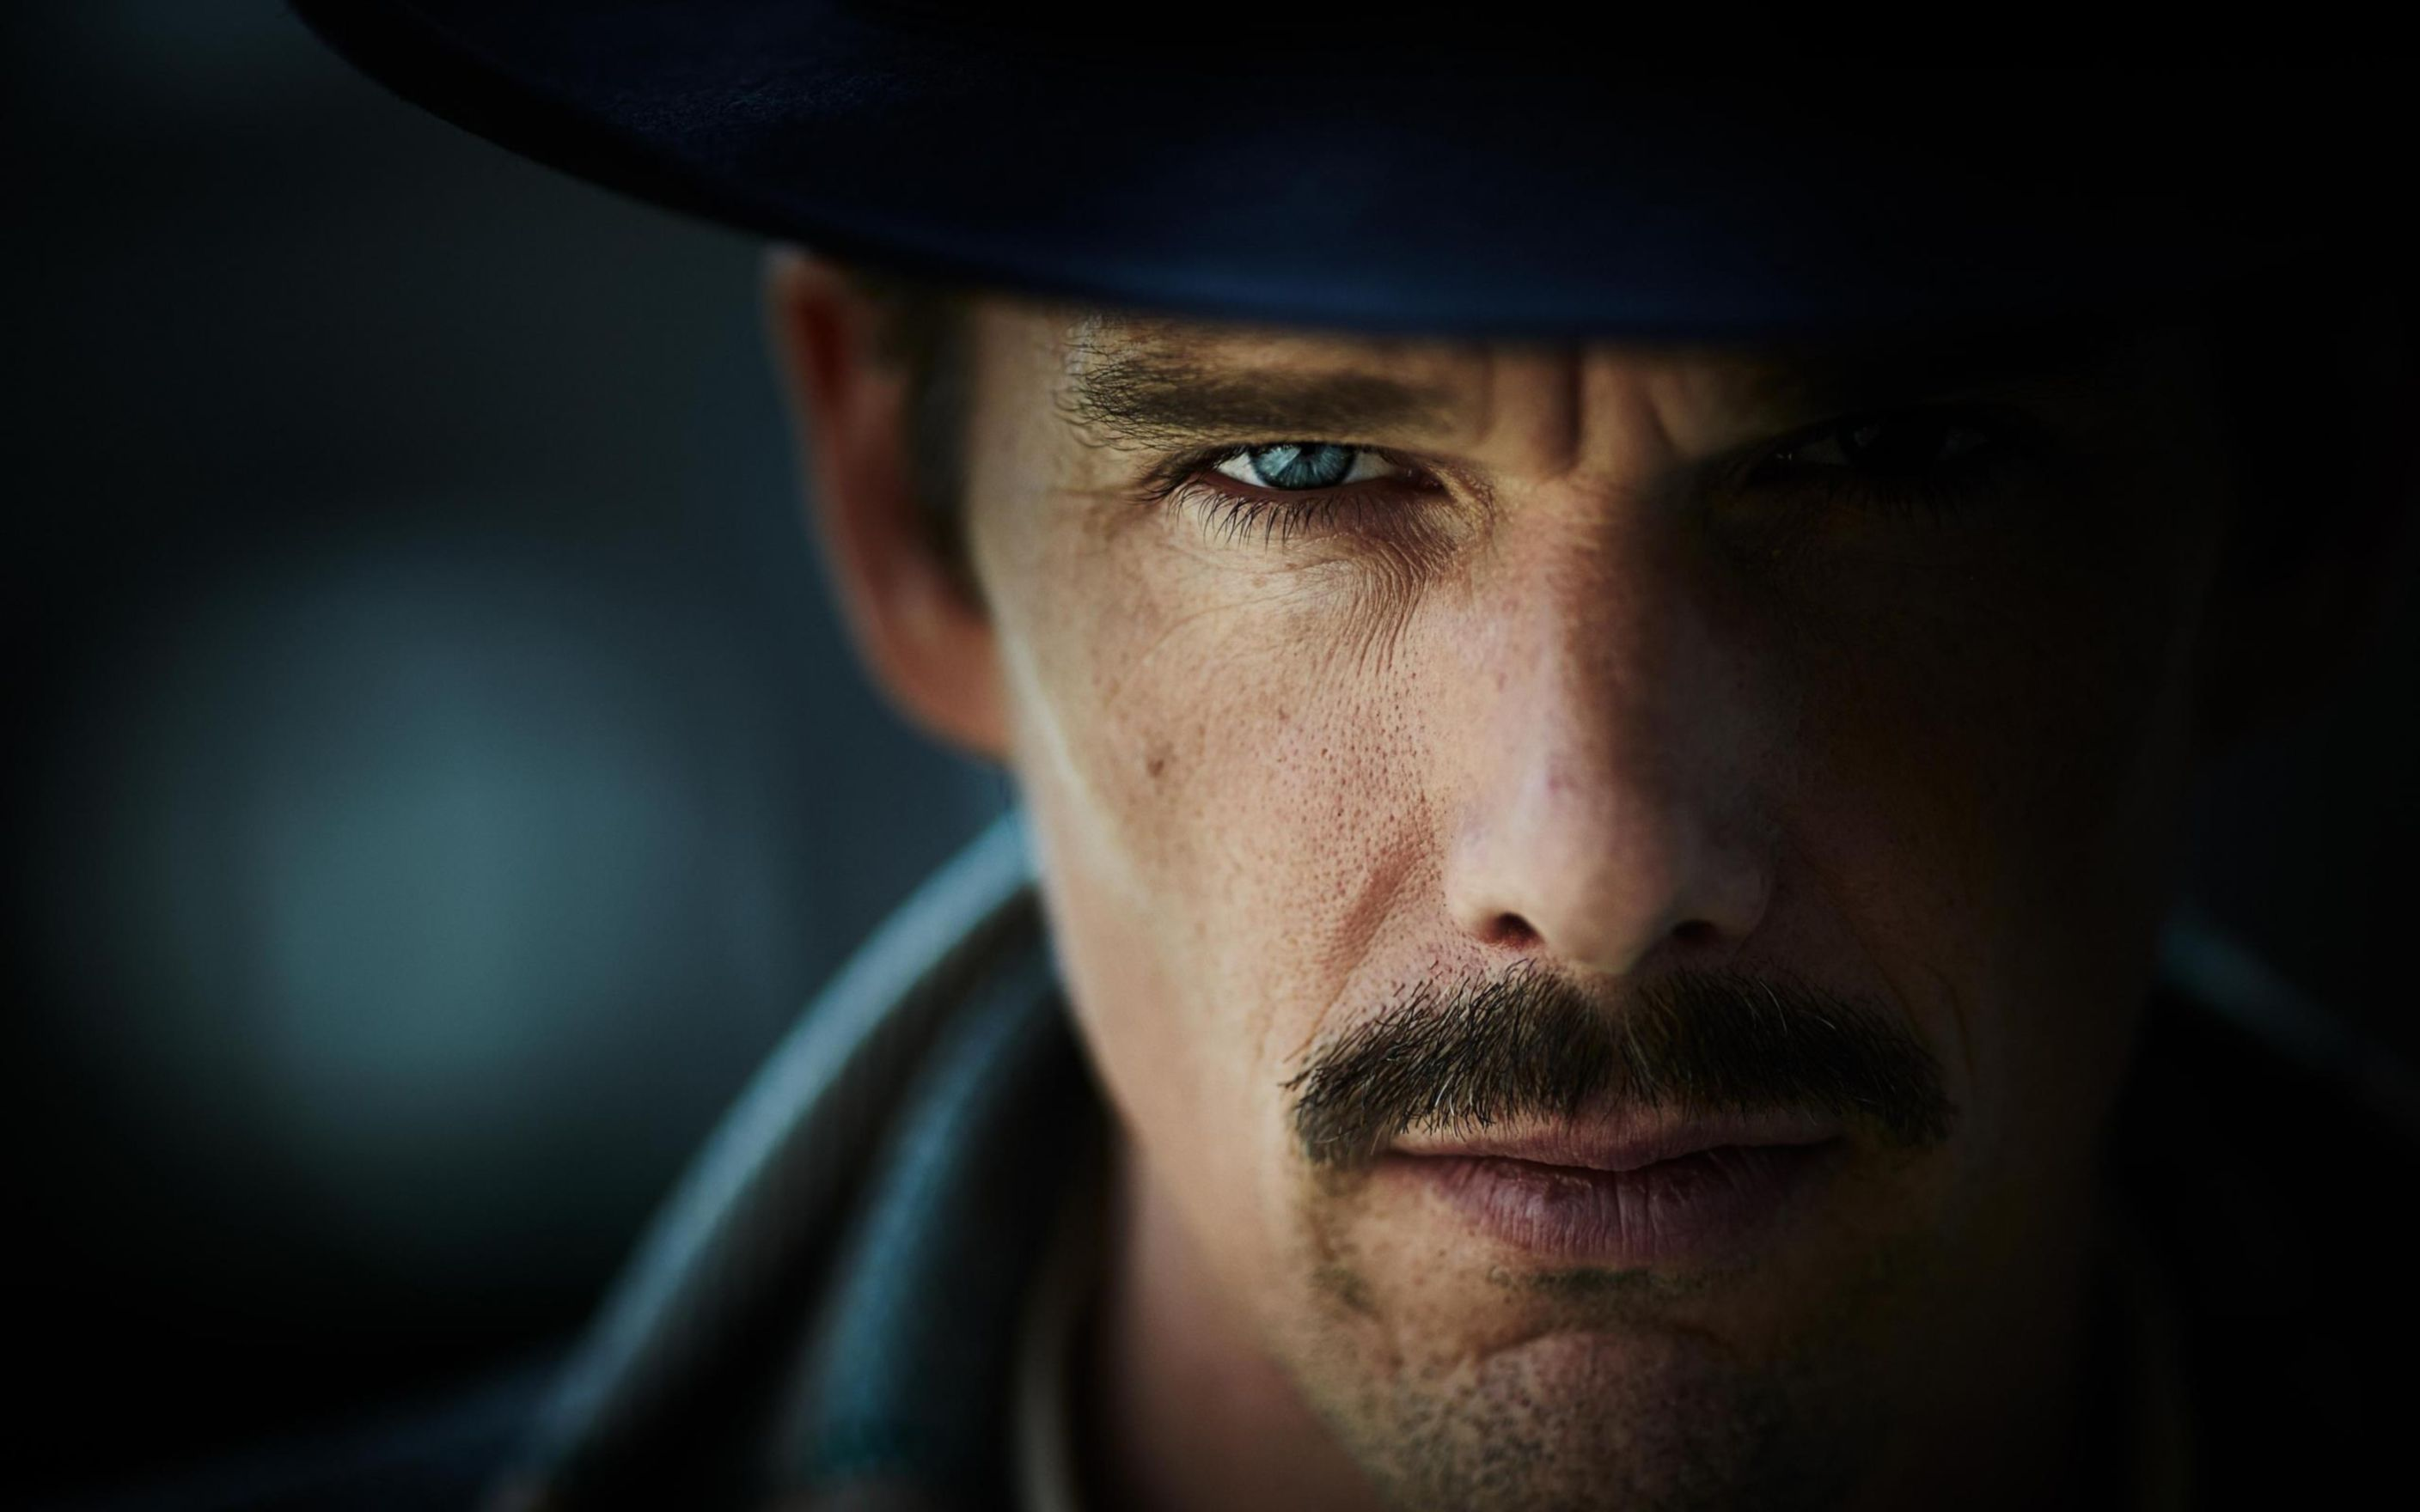 Download free HD Ethan Hawke Look Wallpaper, image